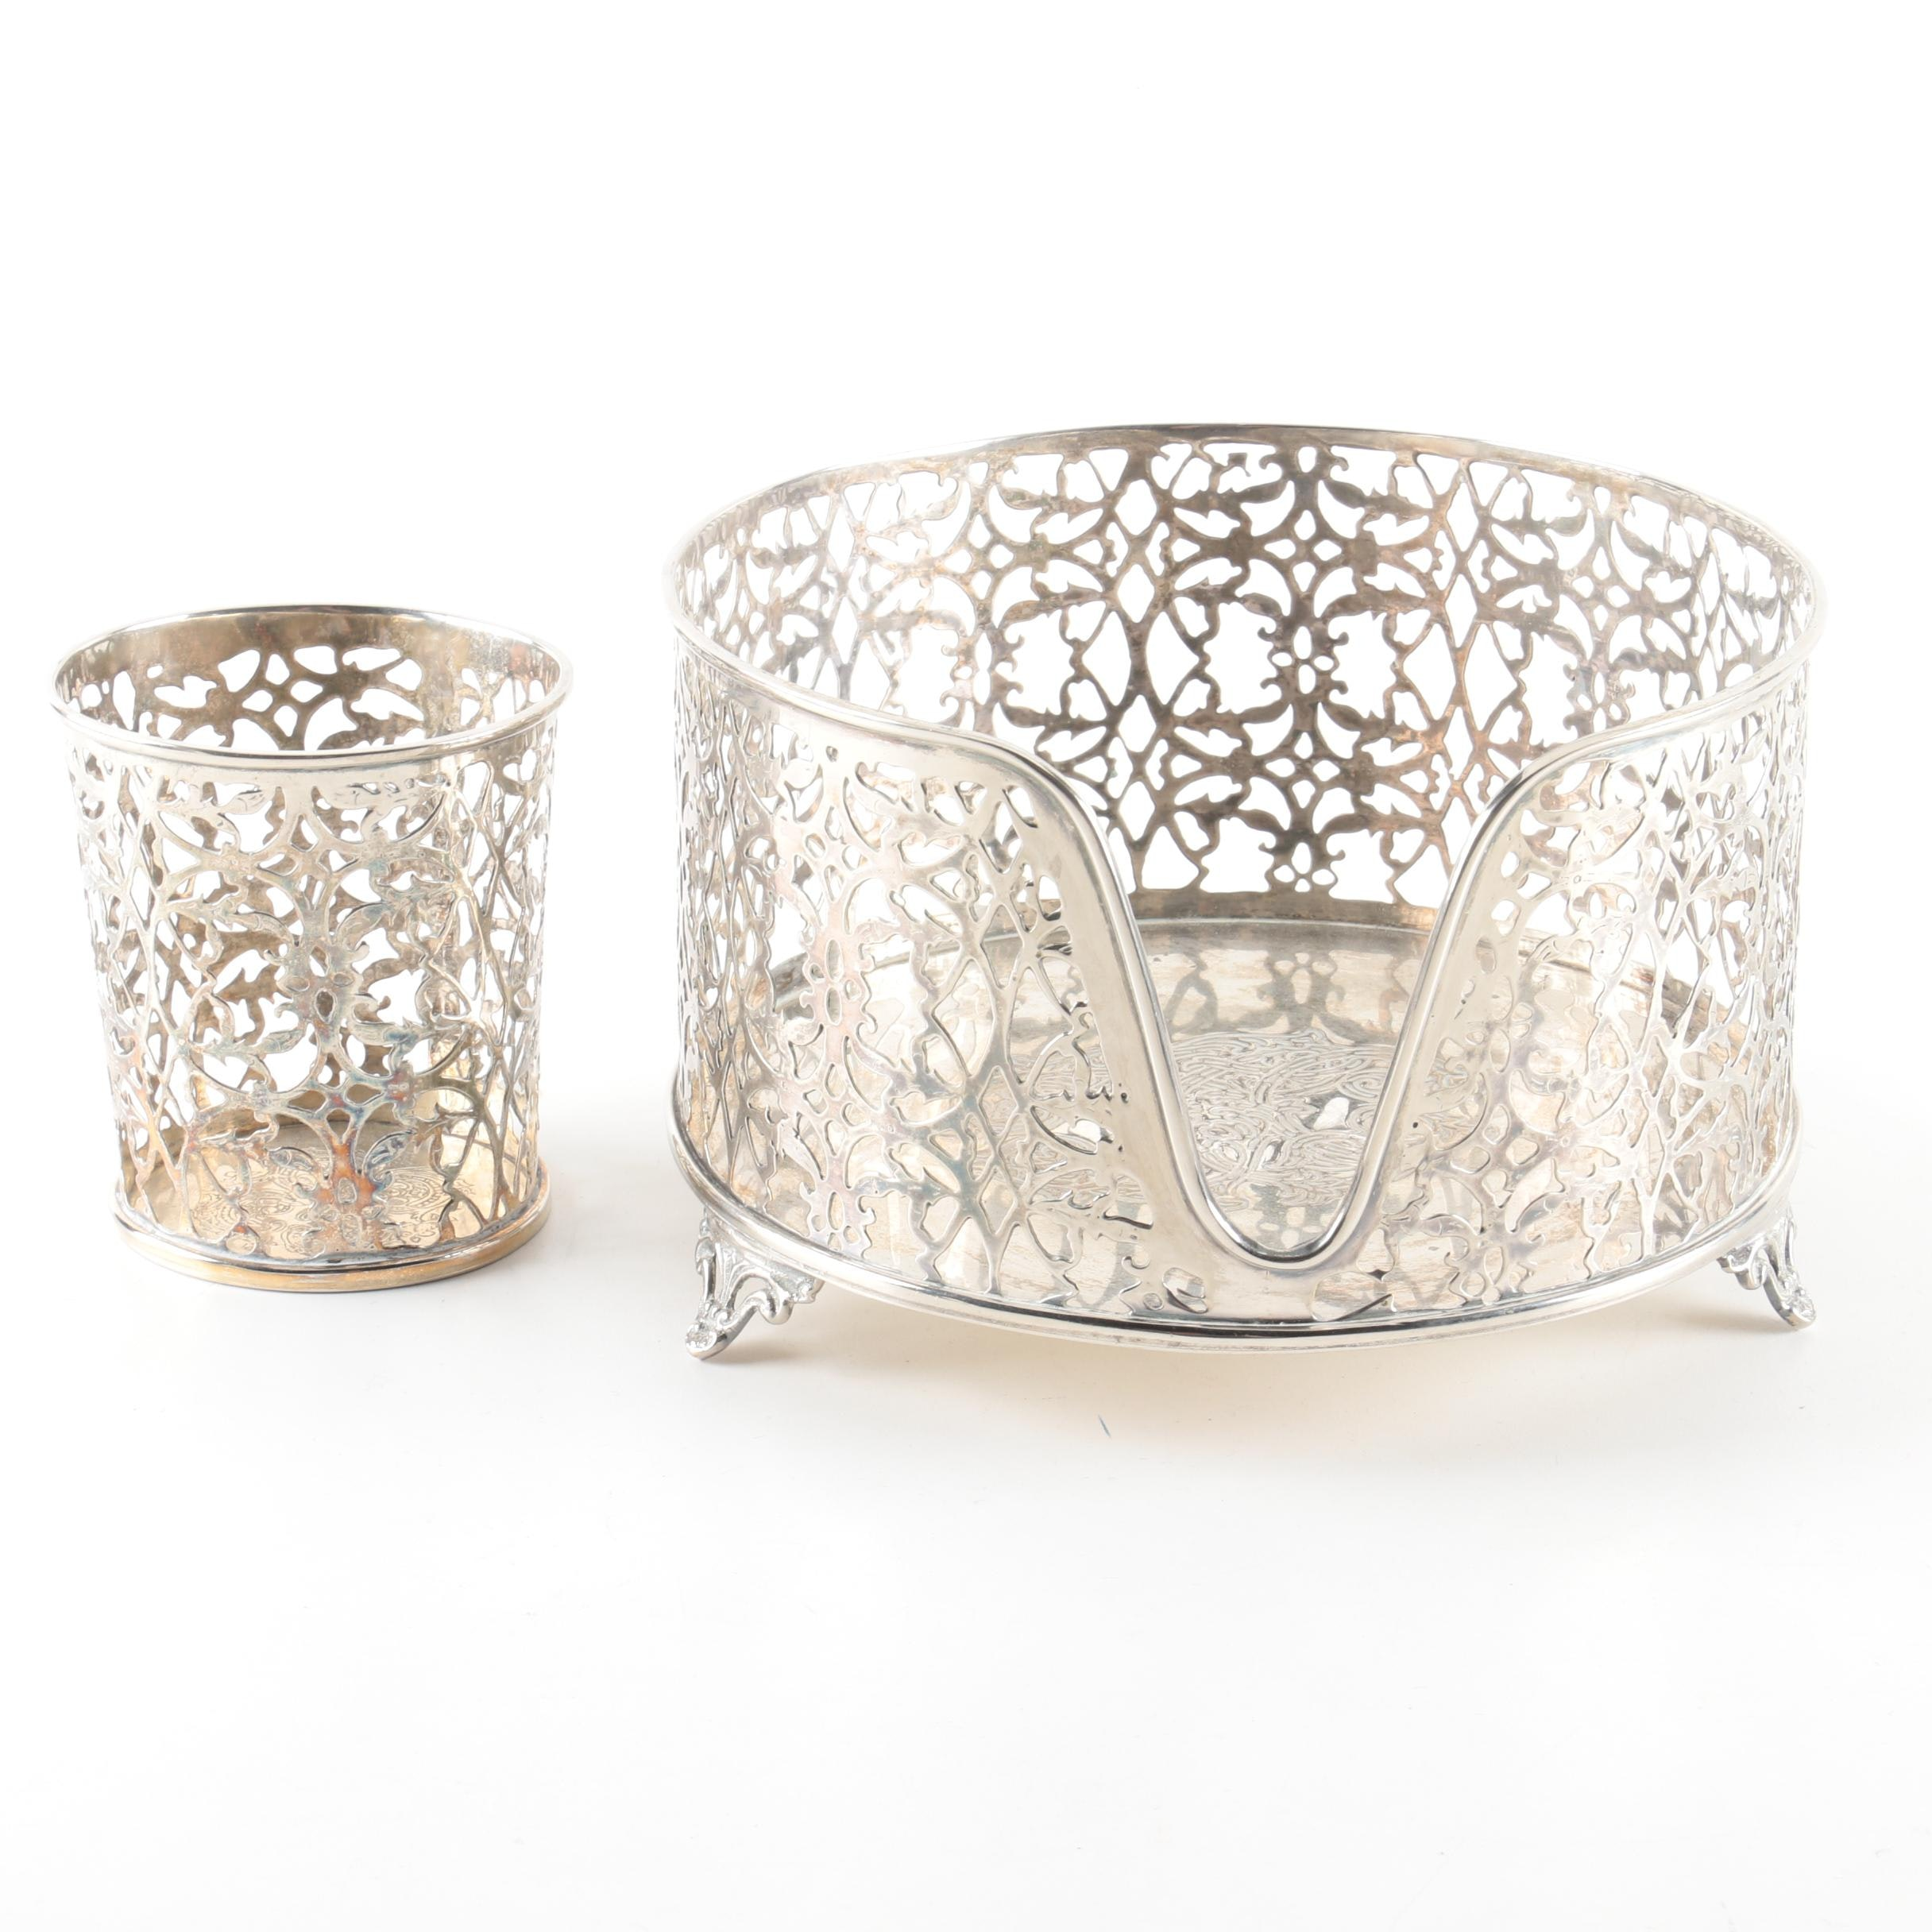 Silver Plate Openwork Serving Pieces Including Cup and Stand